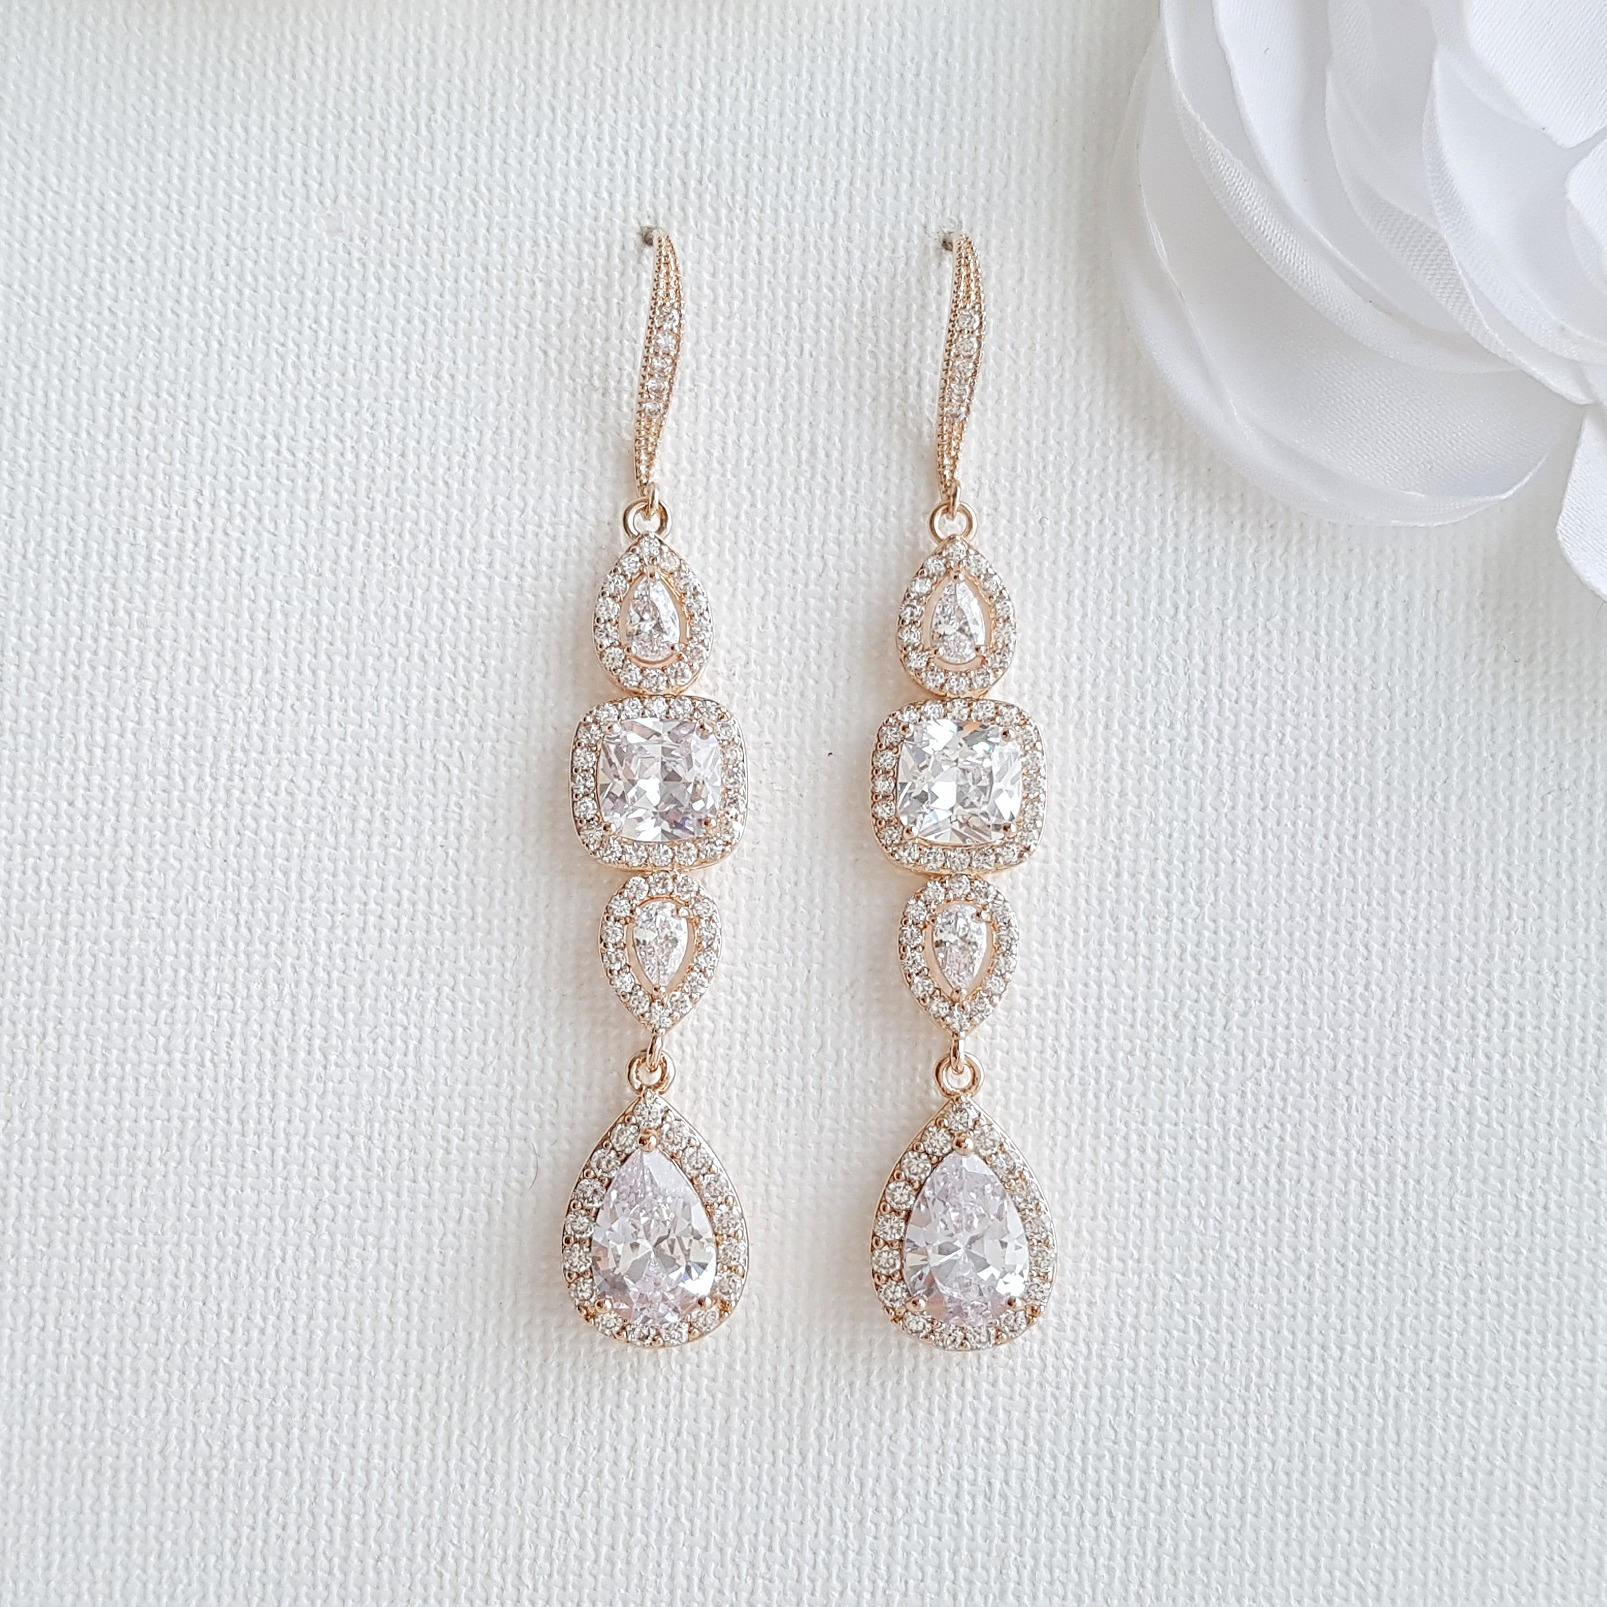 Bridal Dangle Drop Earring Rose Gold-Gianna - PoetryDesigns